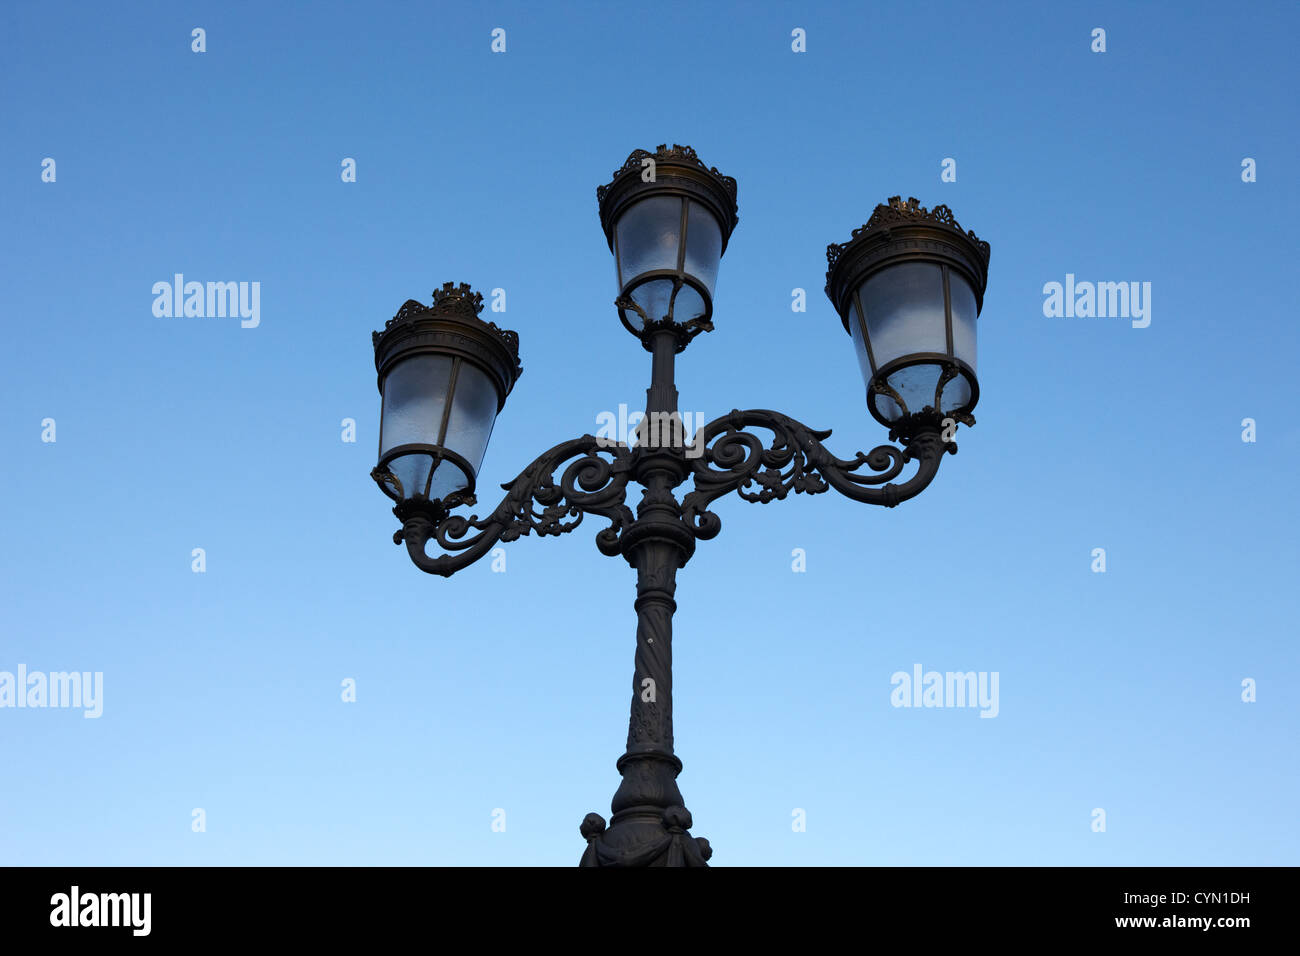 Victorian Lighting Stock Photos & Victorian Lighting Stock Images ...